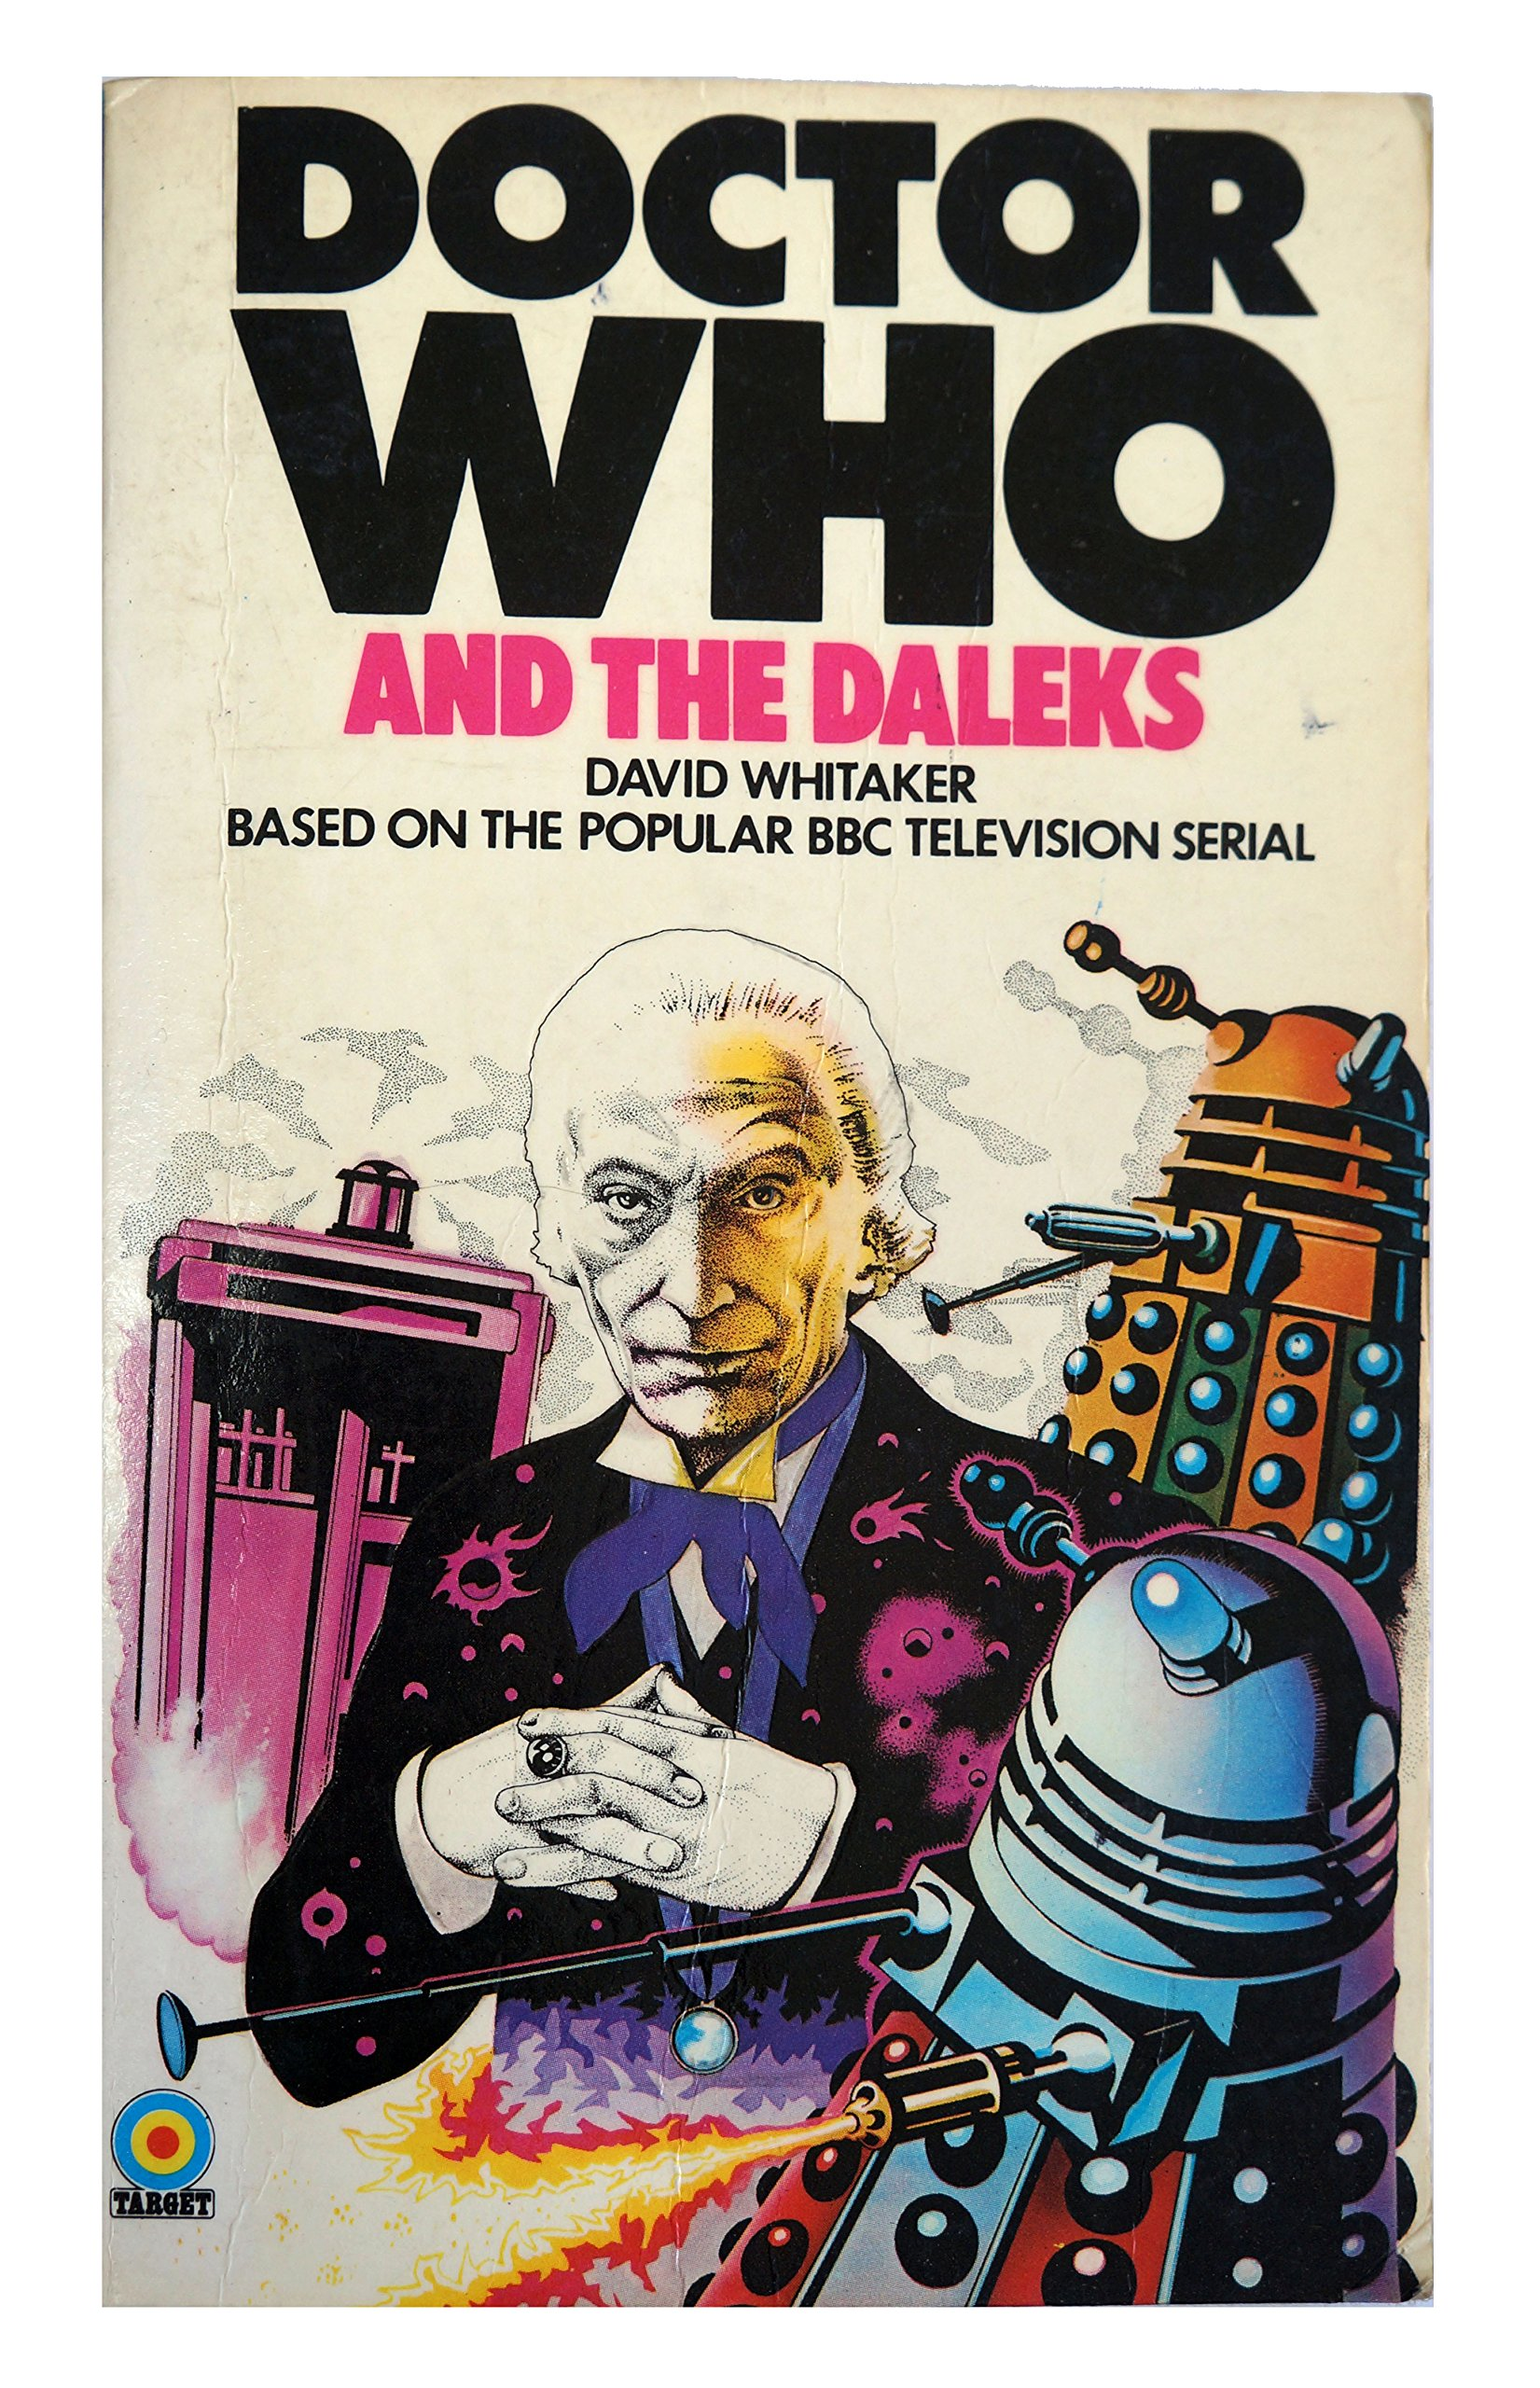 Doctor Who And The Daleks Target Paperback Novel First Edition Book 1973 By  David Whitaker [Paperback] David Whitaker and Terry Nation: Amazon.co.uk:  David Whitaker, Terry Nation: 0680044016672: Books